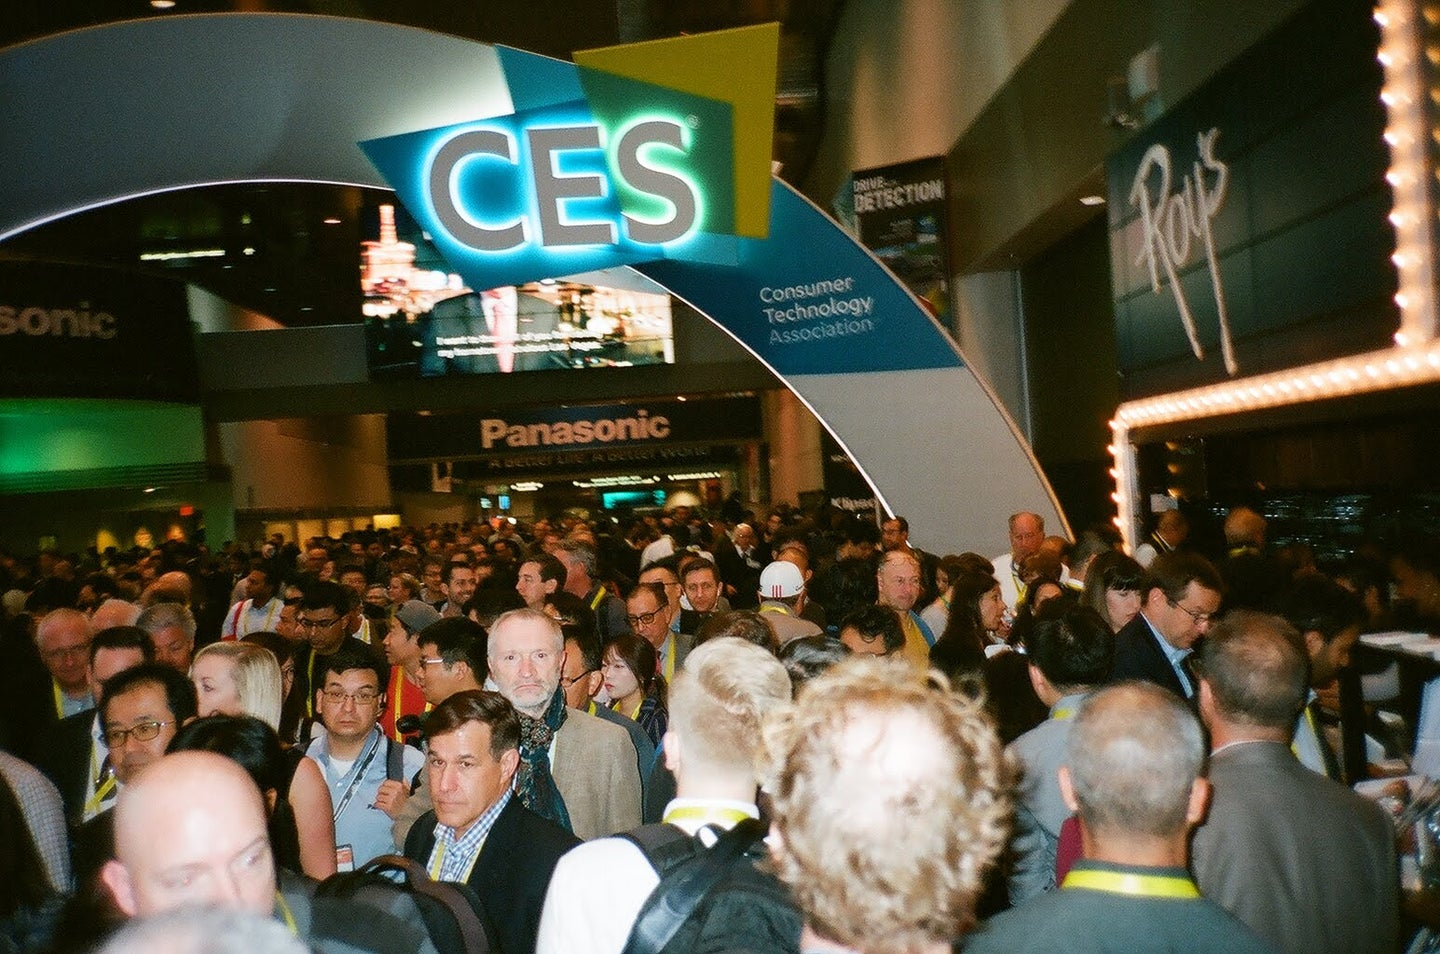 A crowd of people at the consumer electronics show.